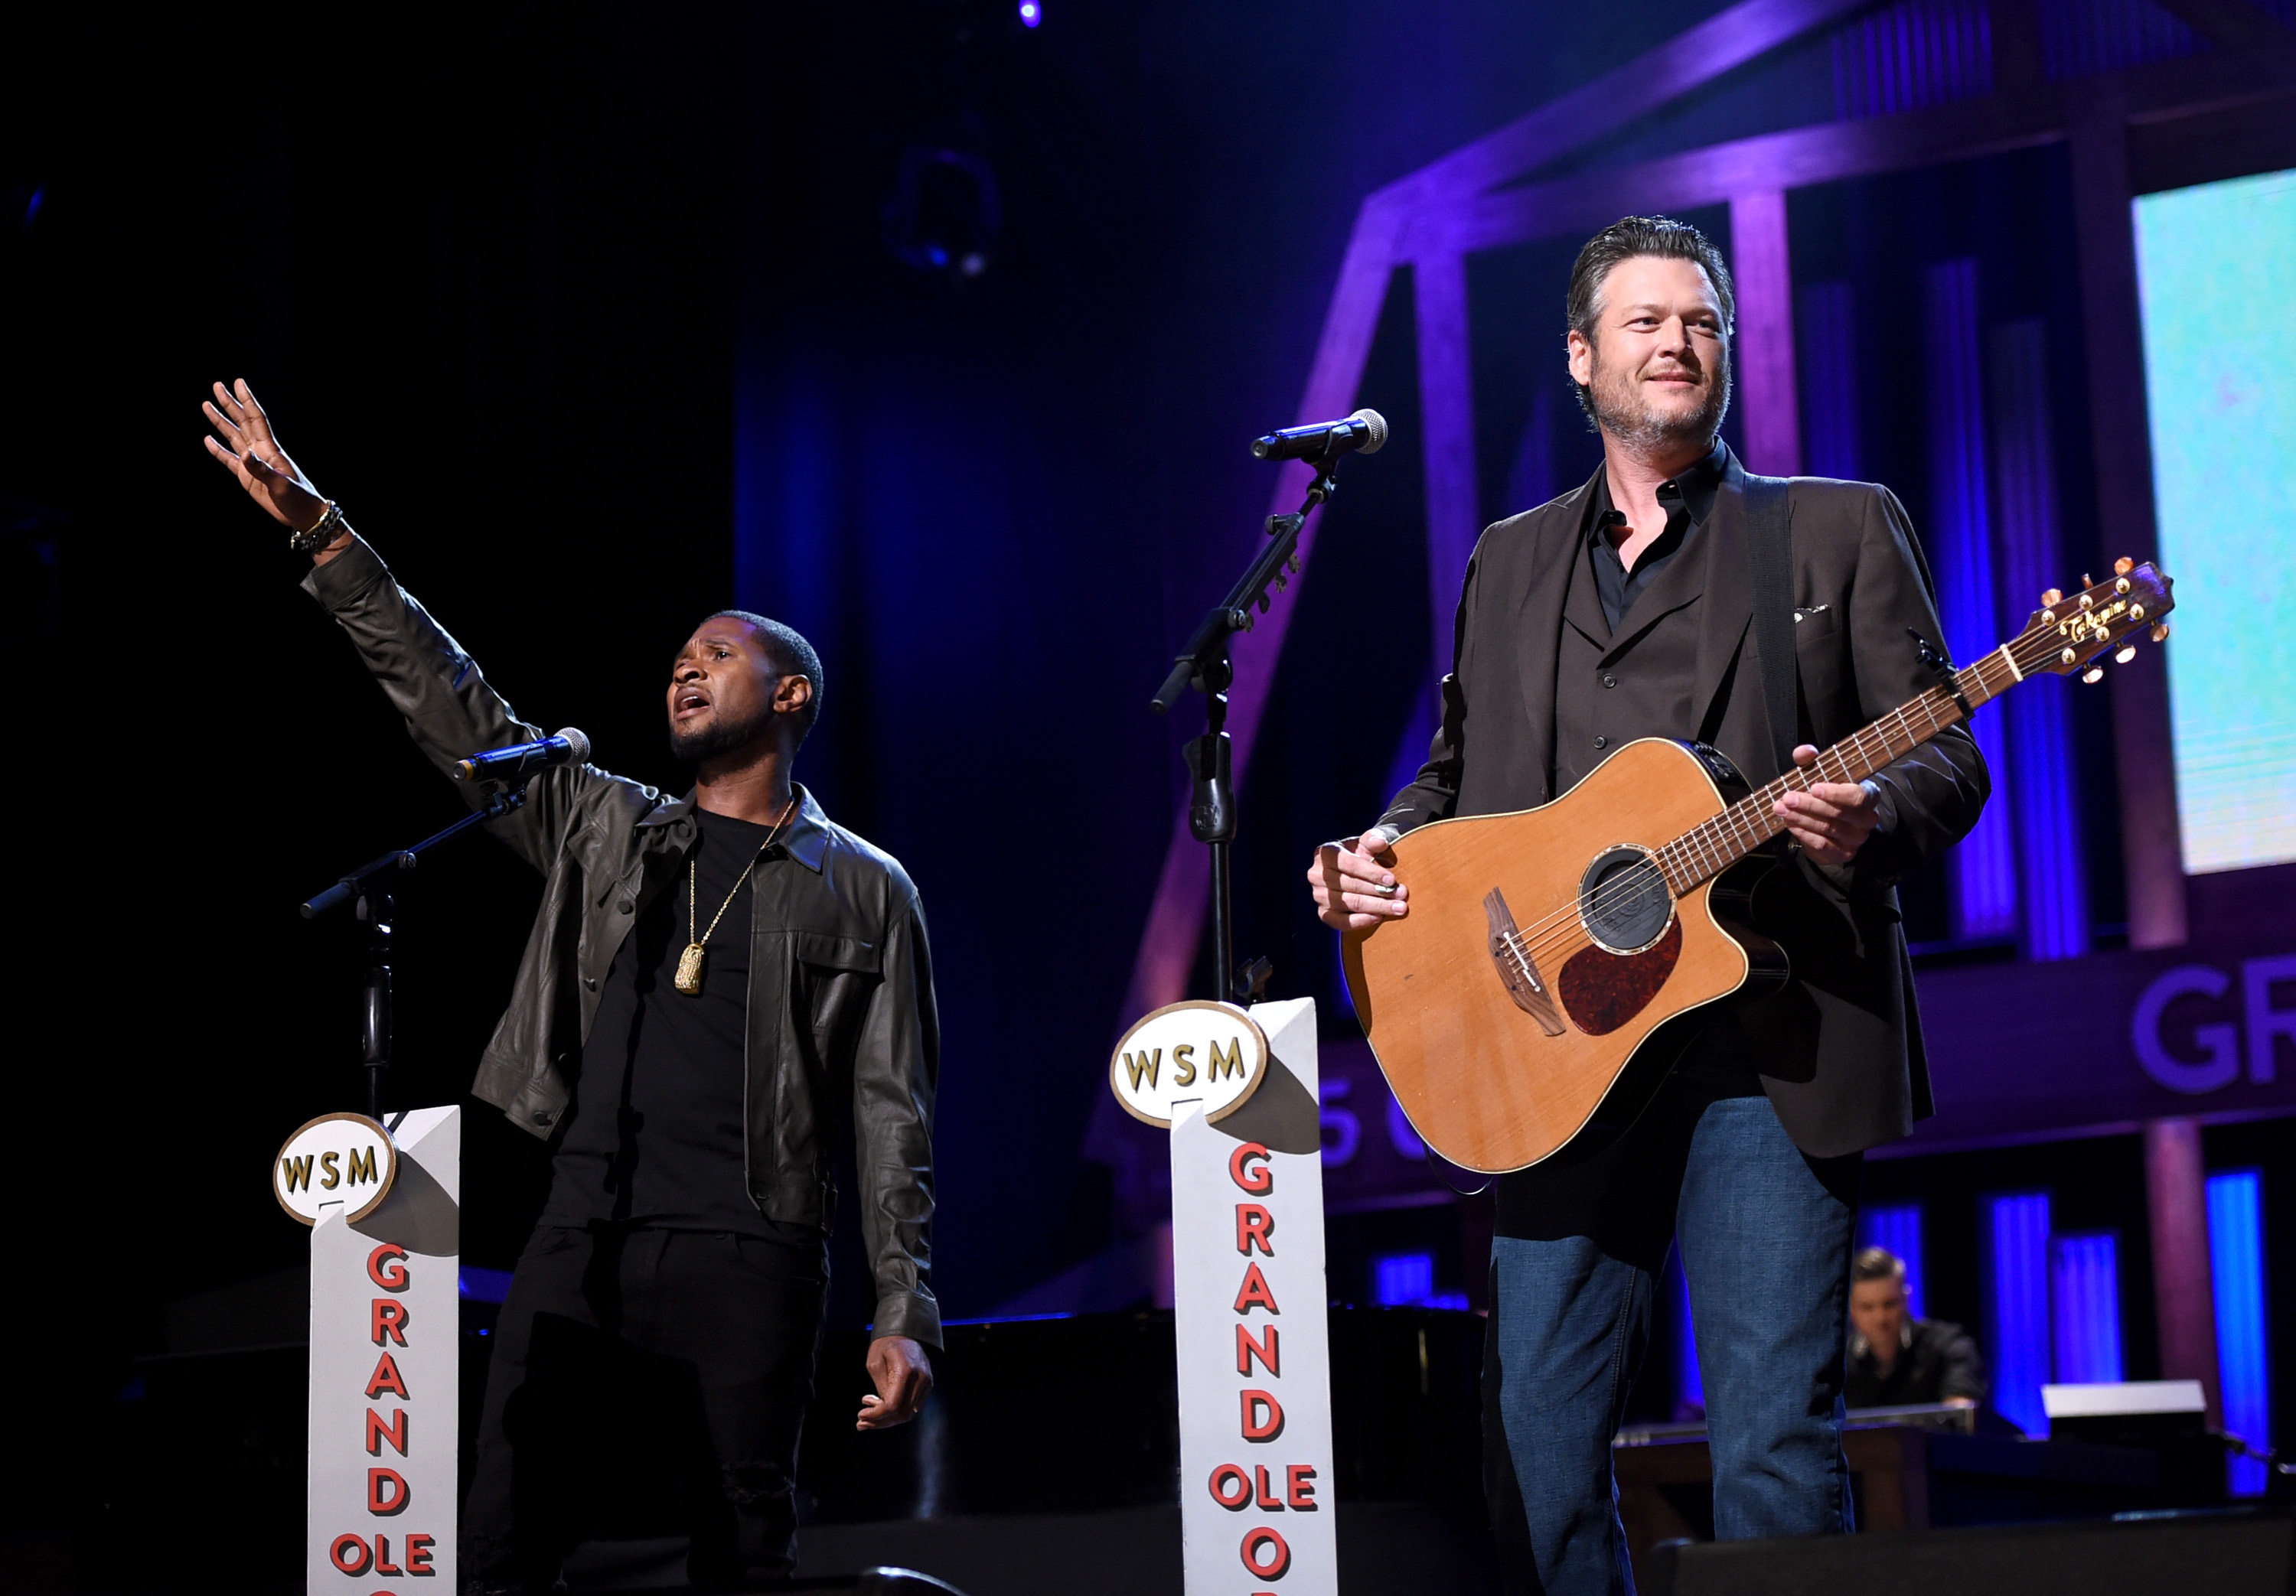 <div class='meta'><div class='origin-logo' data-origin='none'></div><span class='caption-text' data-credit='John Shearer/Hand in Hand/Getty Images'>Usher and Blake Shelton perform onstage during Hand in Hand: A Benefit for Hurricane Relief at the Grand Ole Opry House on September 12, 2017 in Nashville, Tennessee.</span></div>